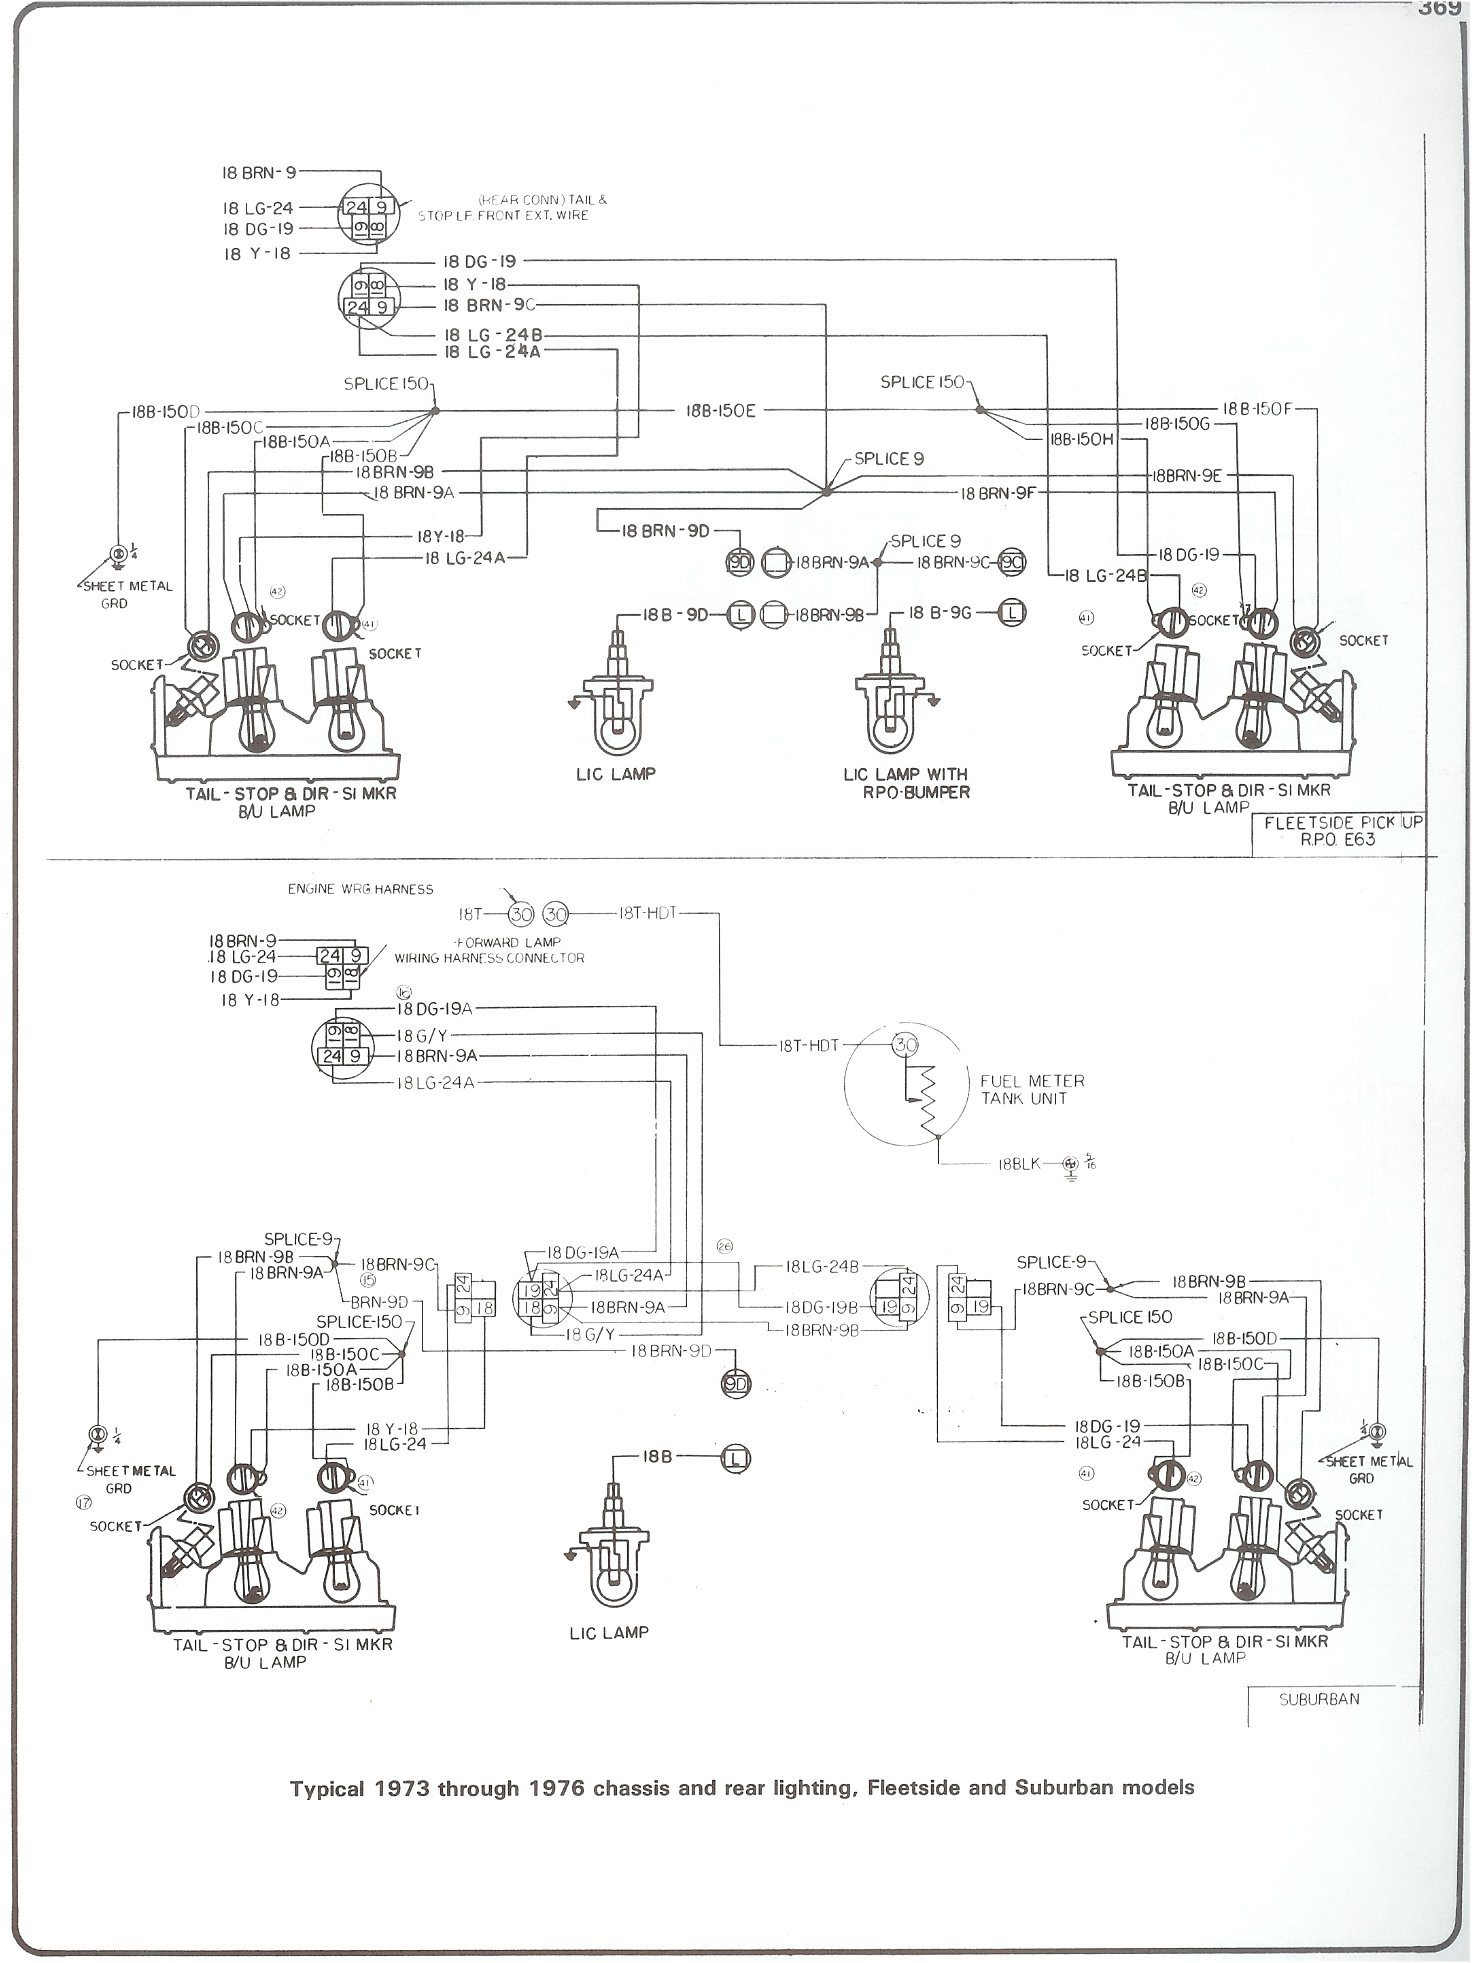 73 76_chass_rr_light_fleet_burb complete 73 87 wiring diagrams gmc truck wiring diagrams at bakdesigns.co